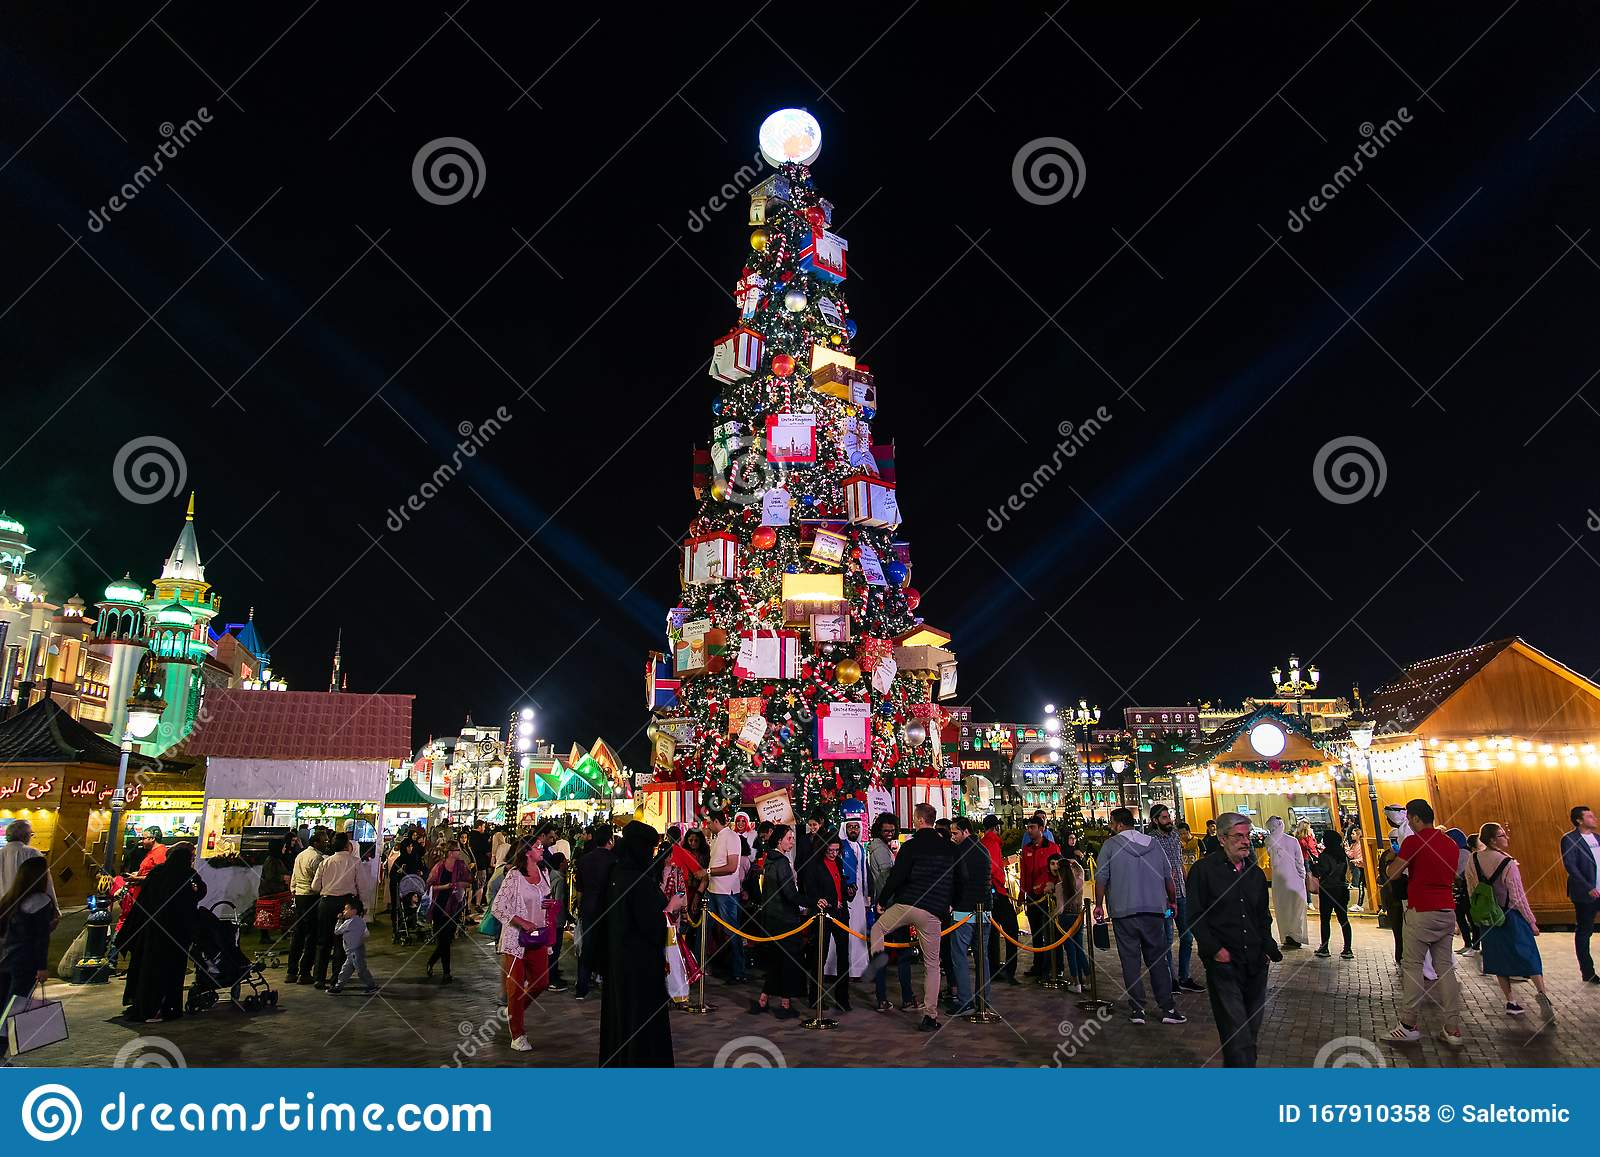 Dubai, United Arab Emirates - December 26, 2018: Global ...